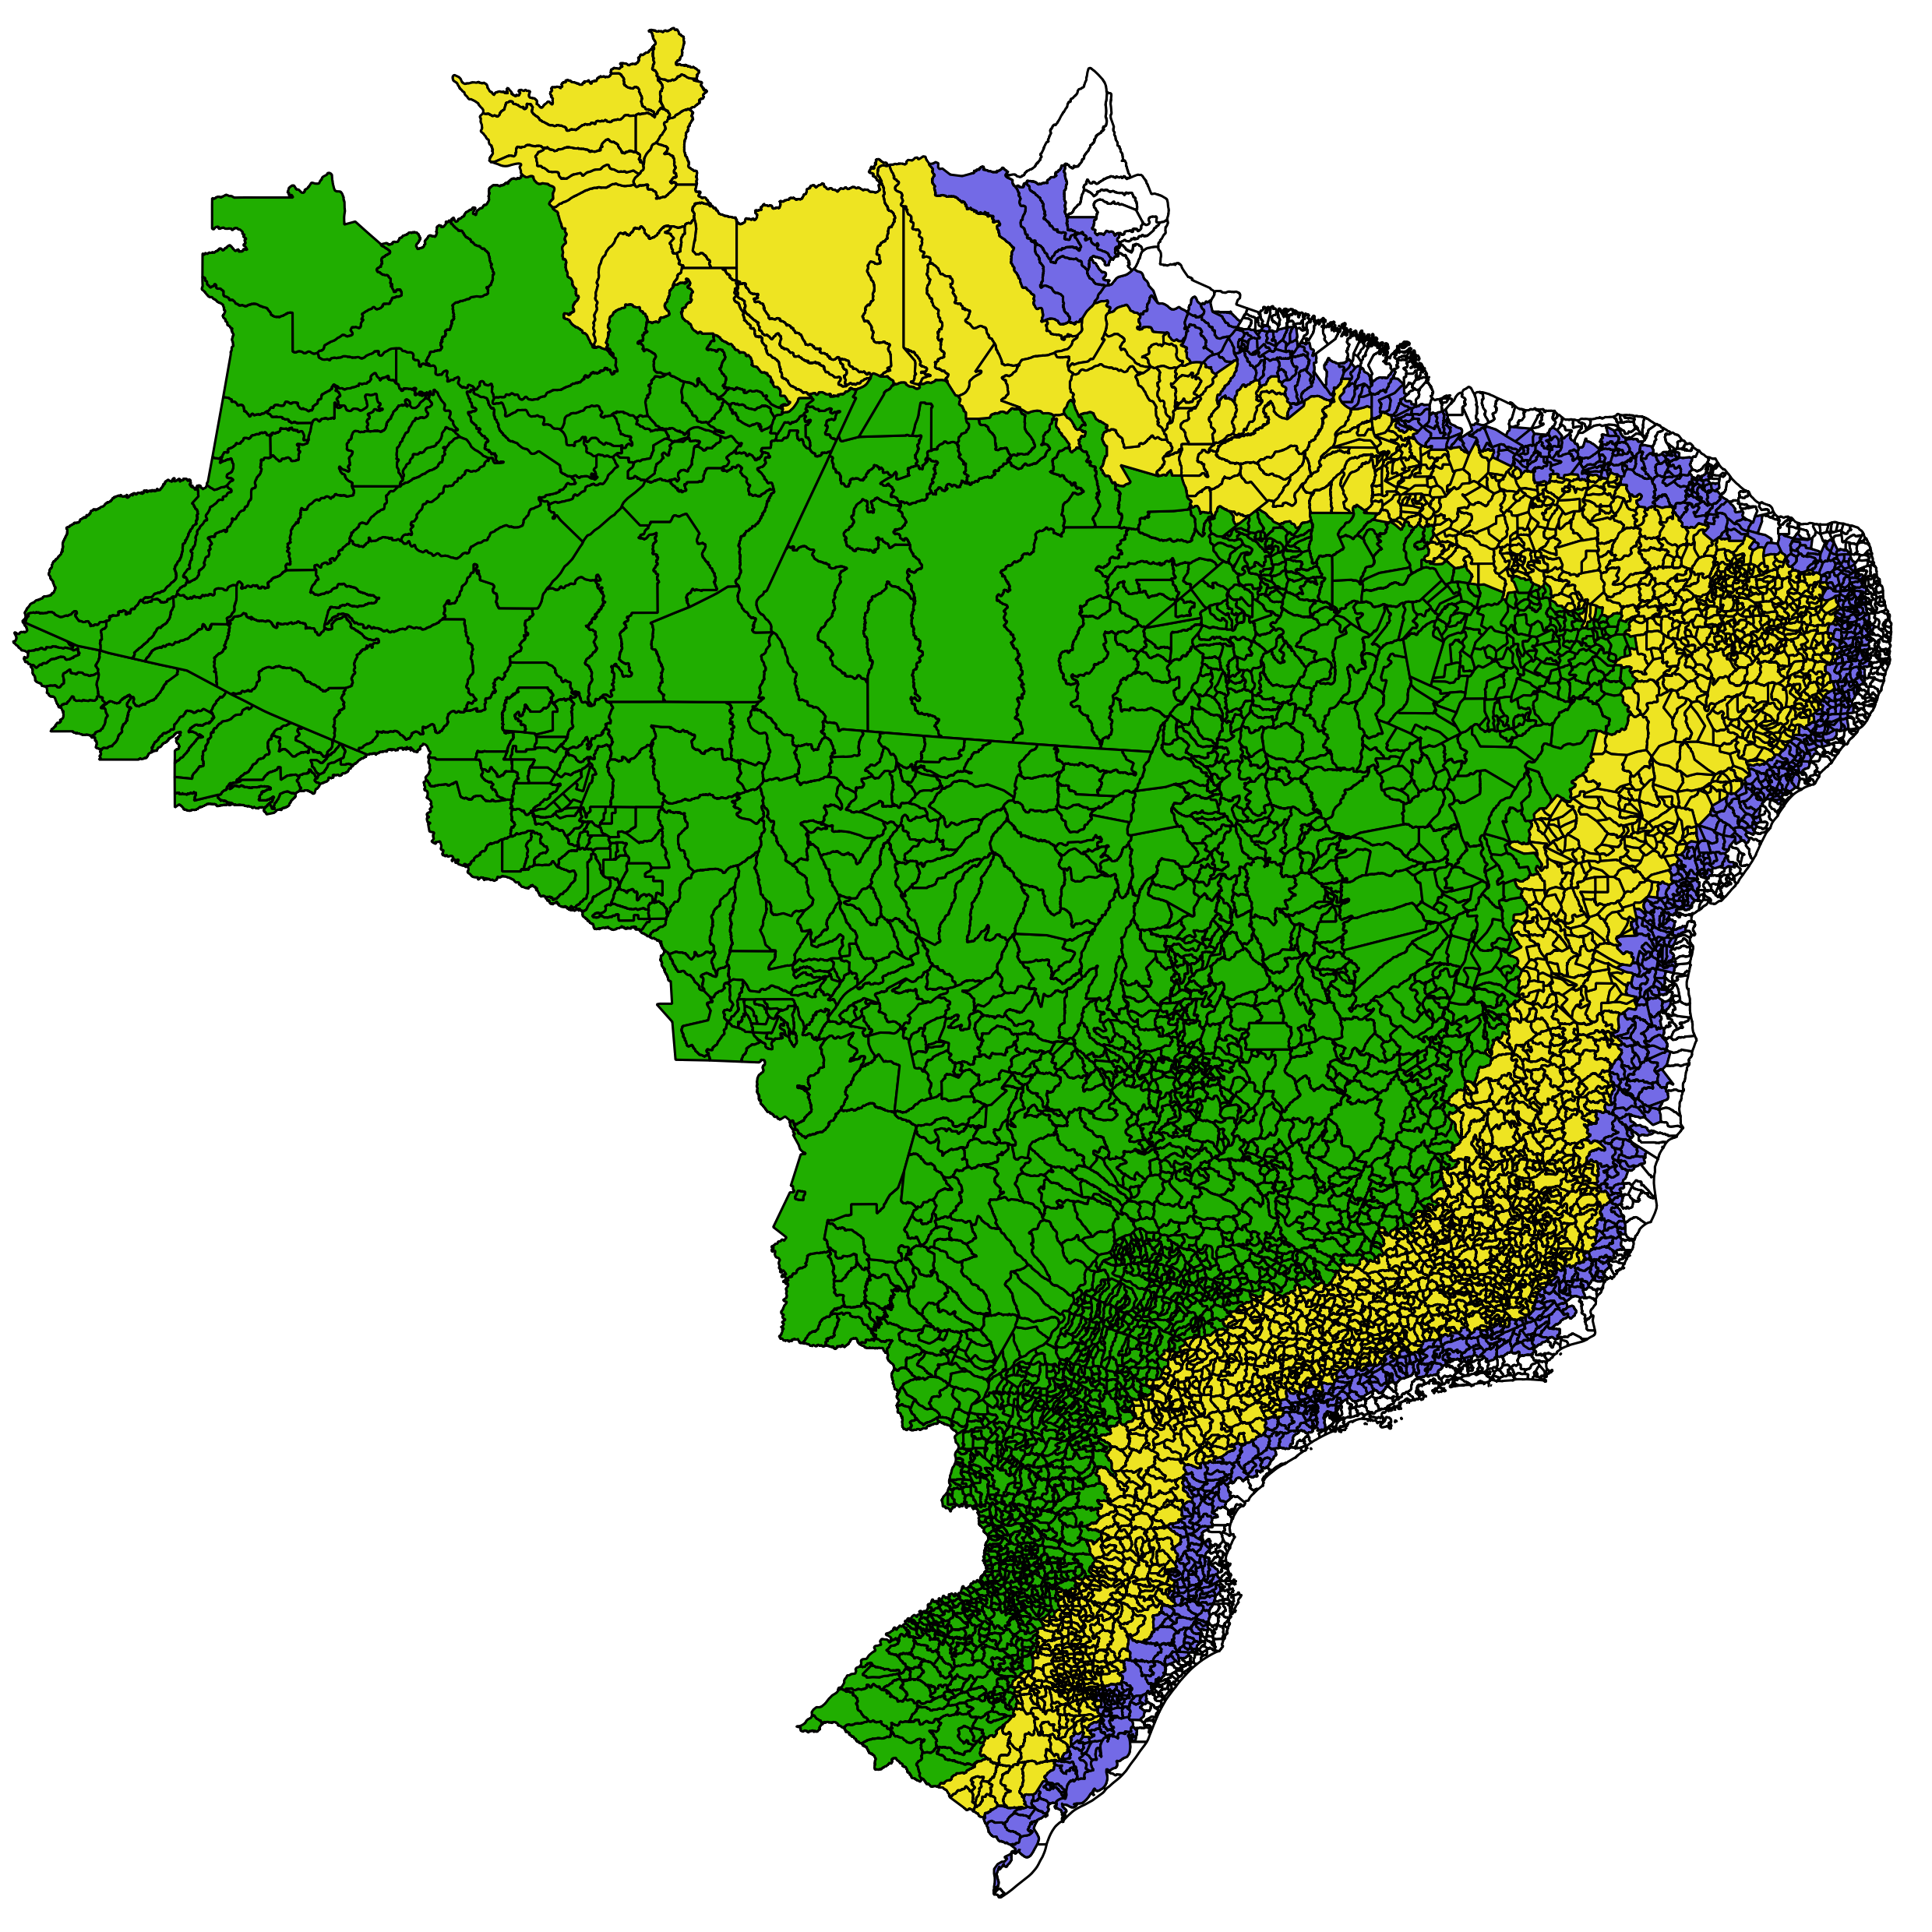 Brazil drawing cool. Distribution of population in